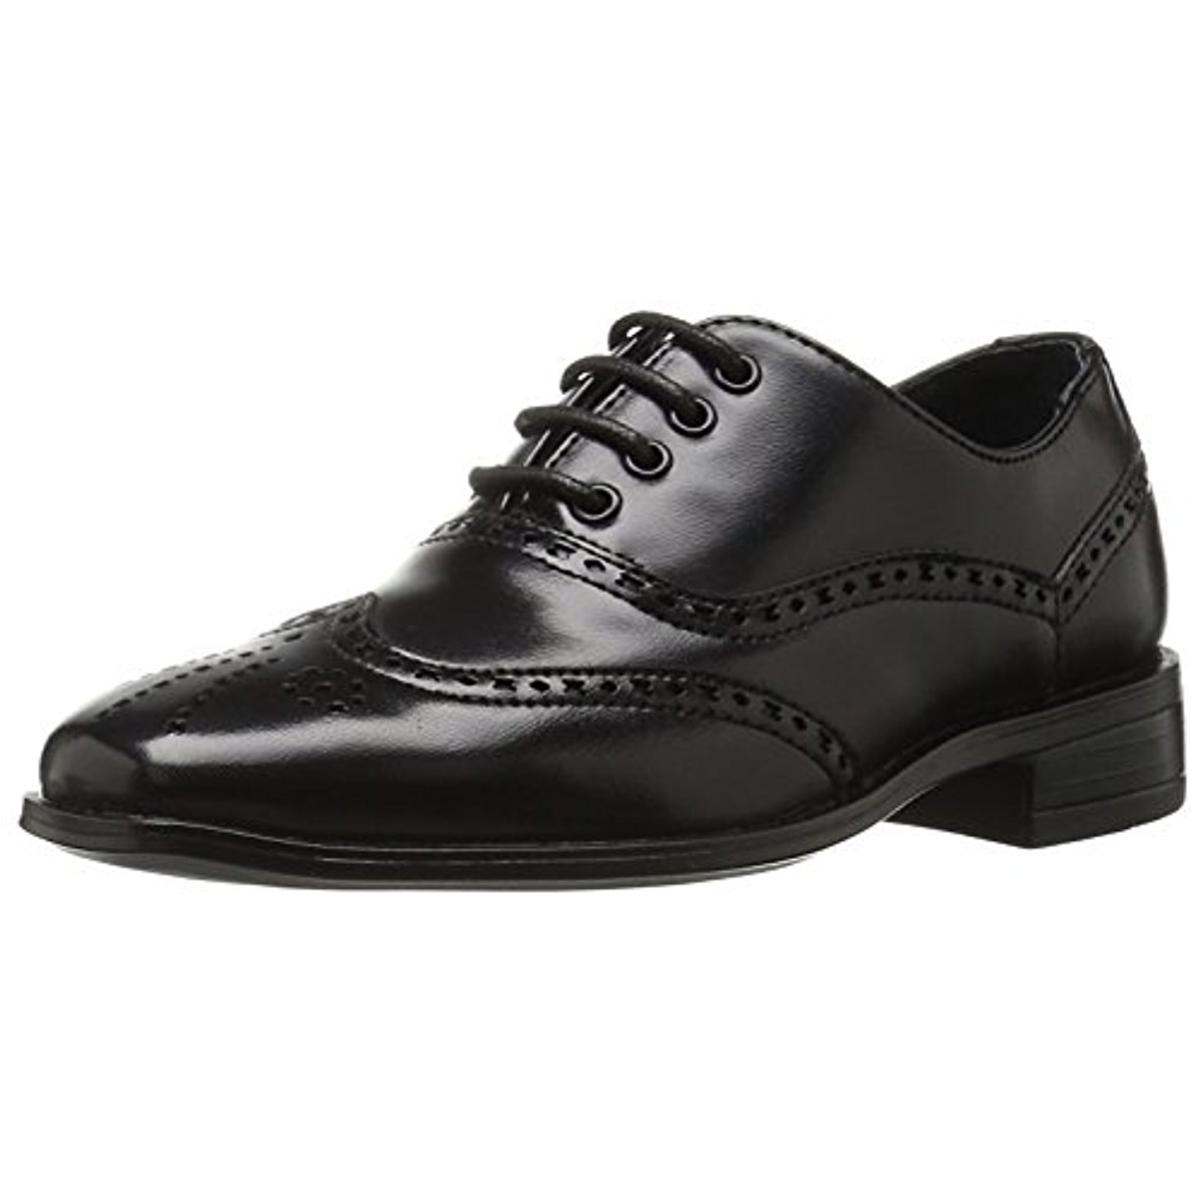 Stacy Adams Boys Stockwell Brogue Wingtip Oxfords by Stacy Adams